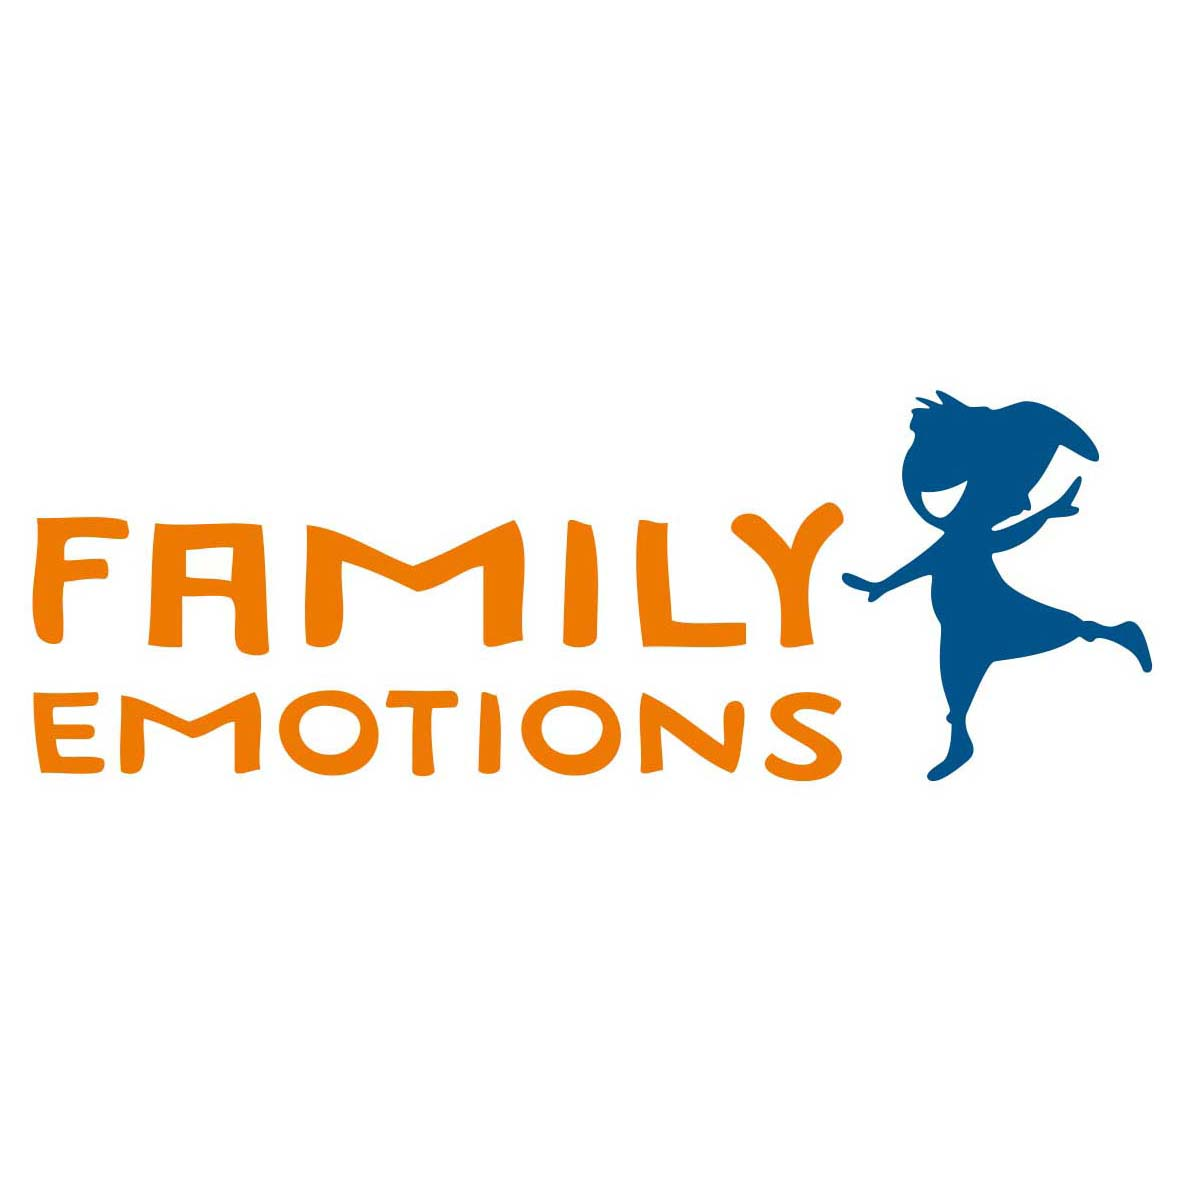 Family Emotions